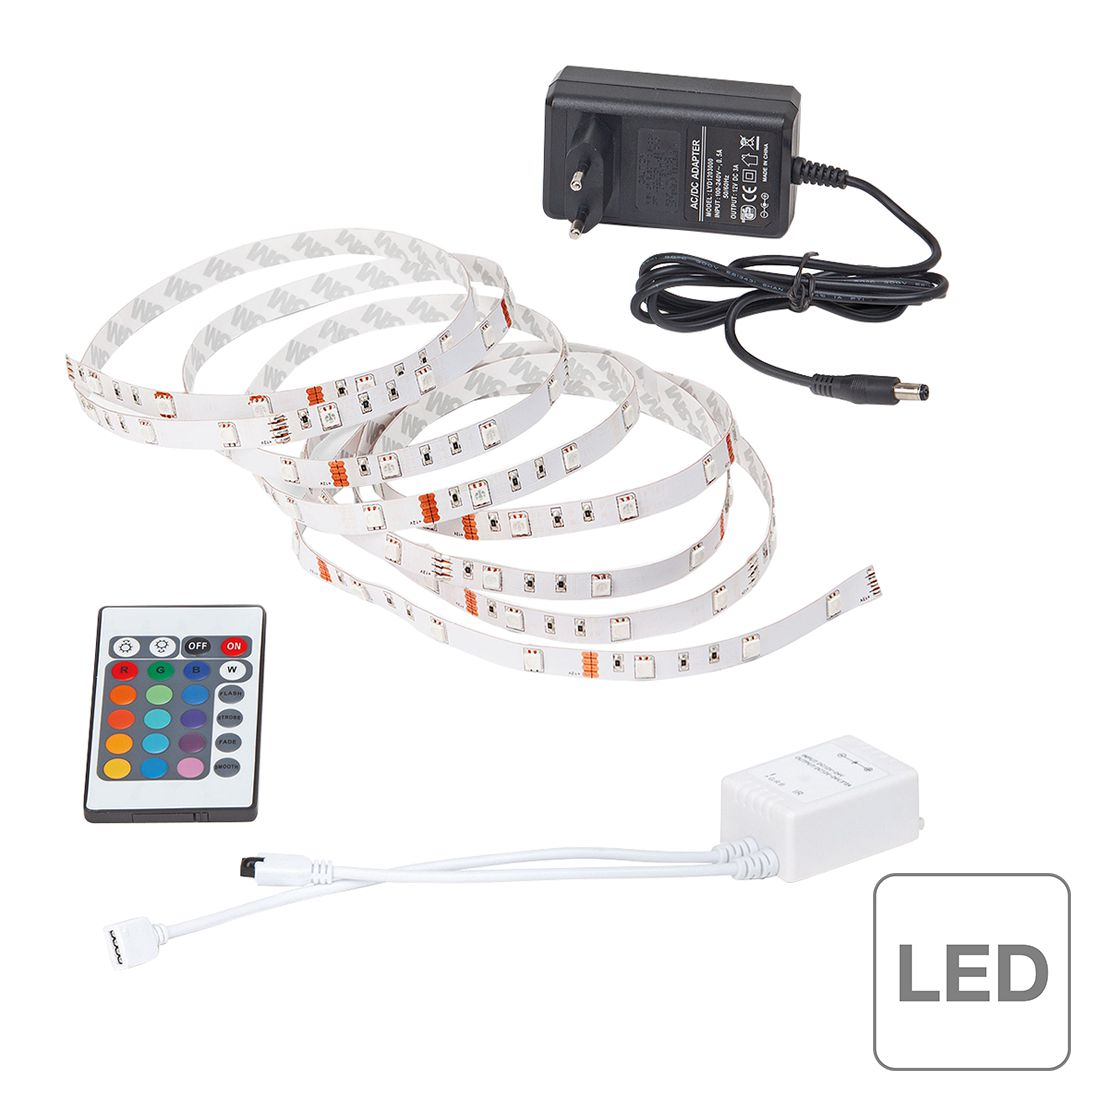 LED-Streifen Light Strip LED ● 3-flammig- Brilliant A+